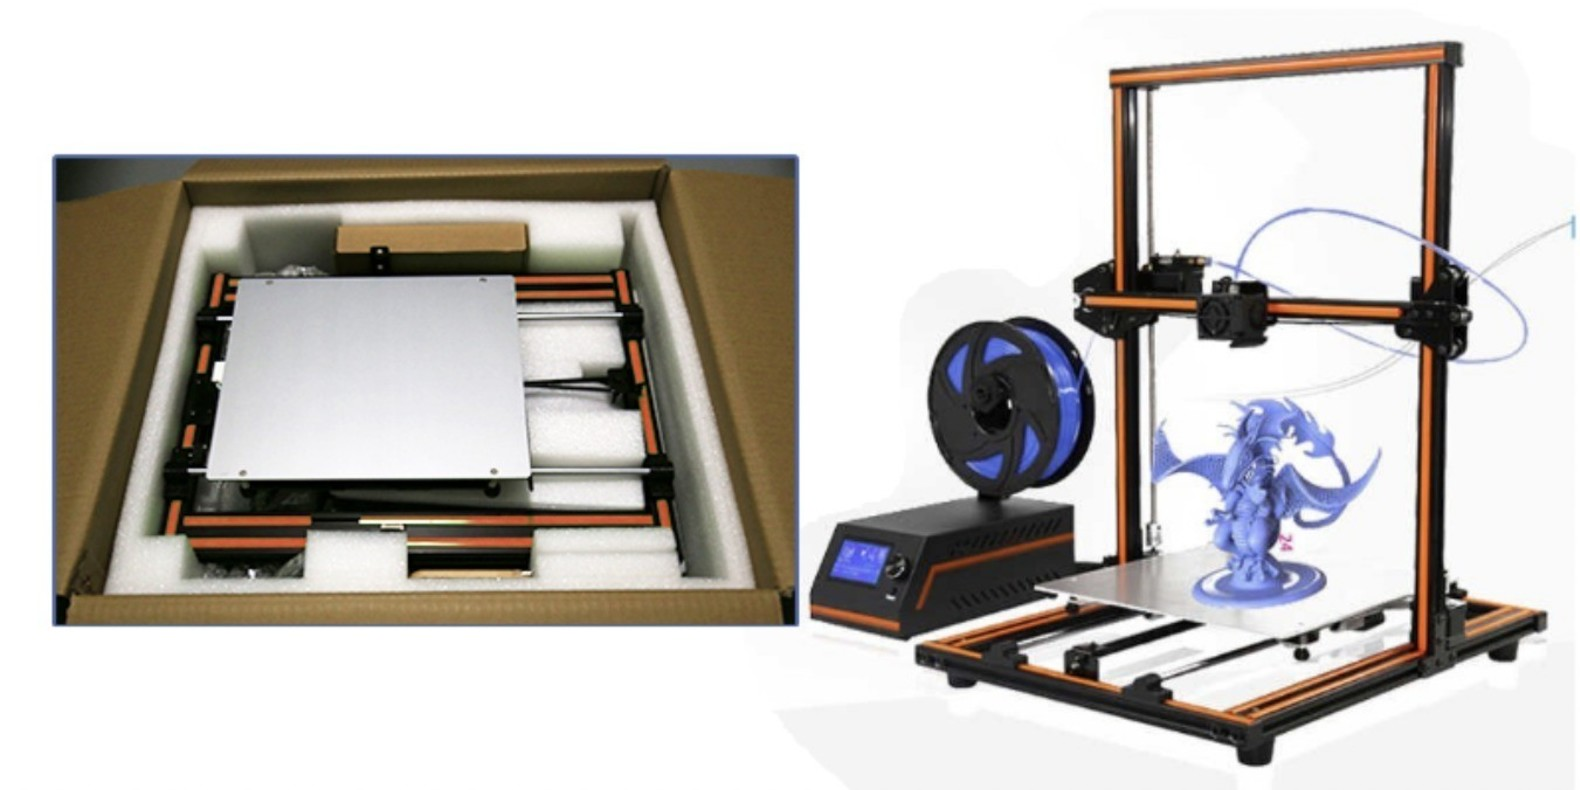 How To Set Up A 3D Printer In 4 Steps